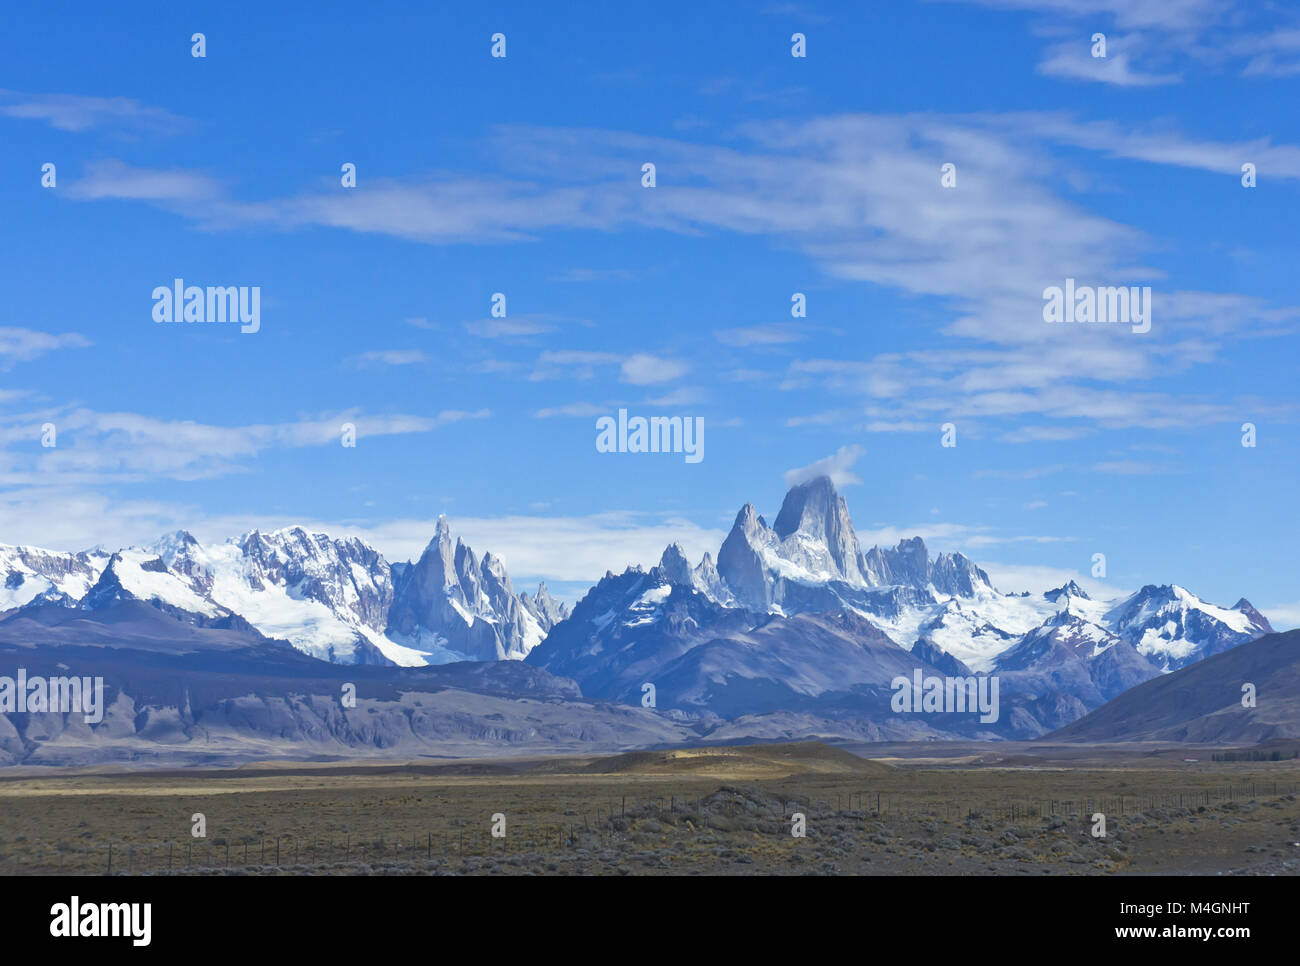 Monte Fitz Roy, Patagonia, Argentina, South America - Stock Image